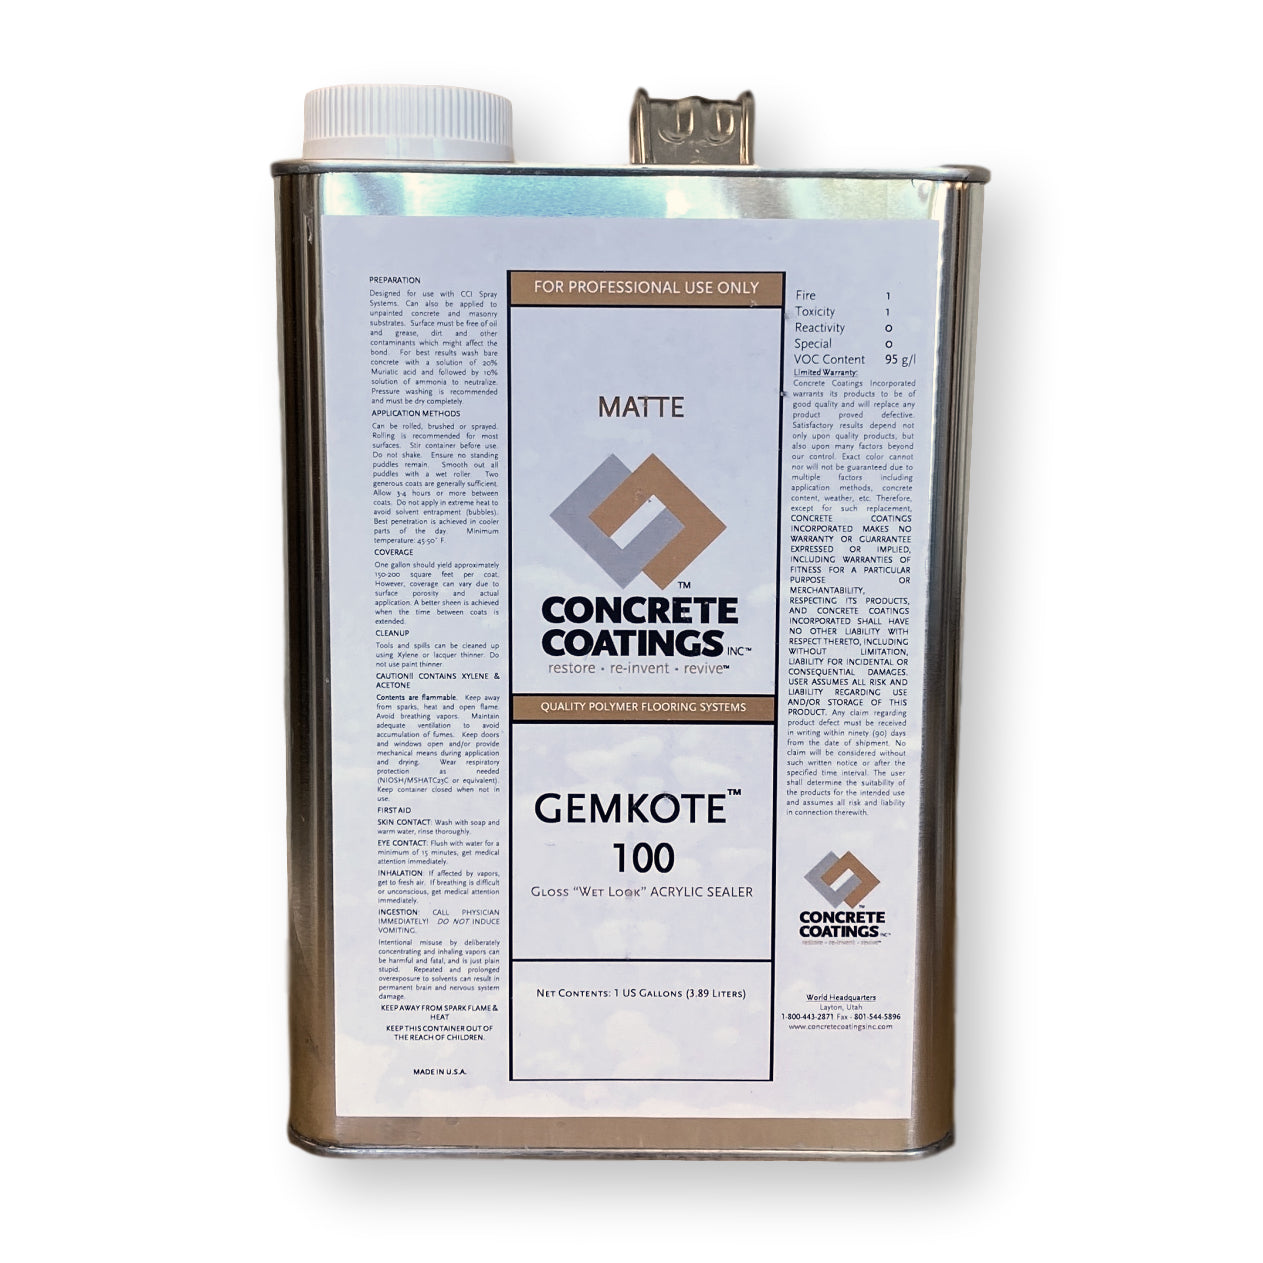 Concrete Coatings GemKote™ 100 Clear Concrete Sealer